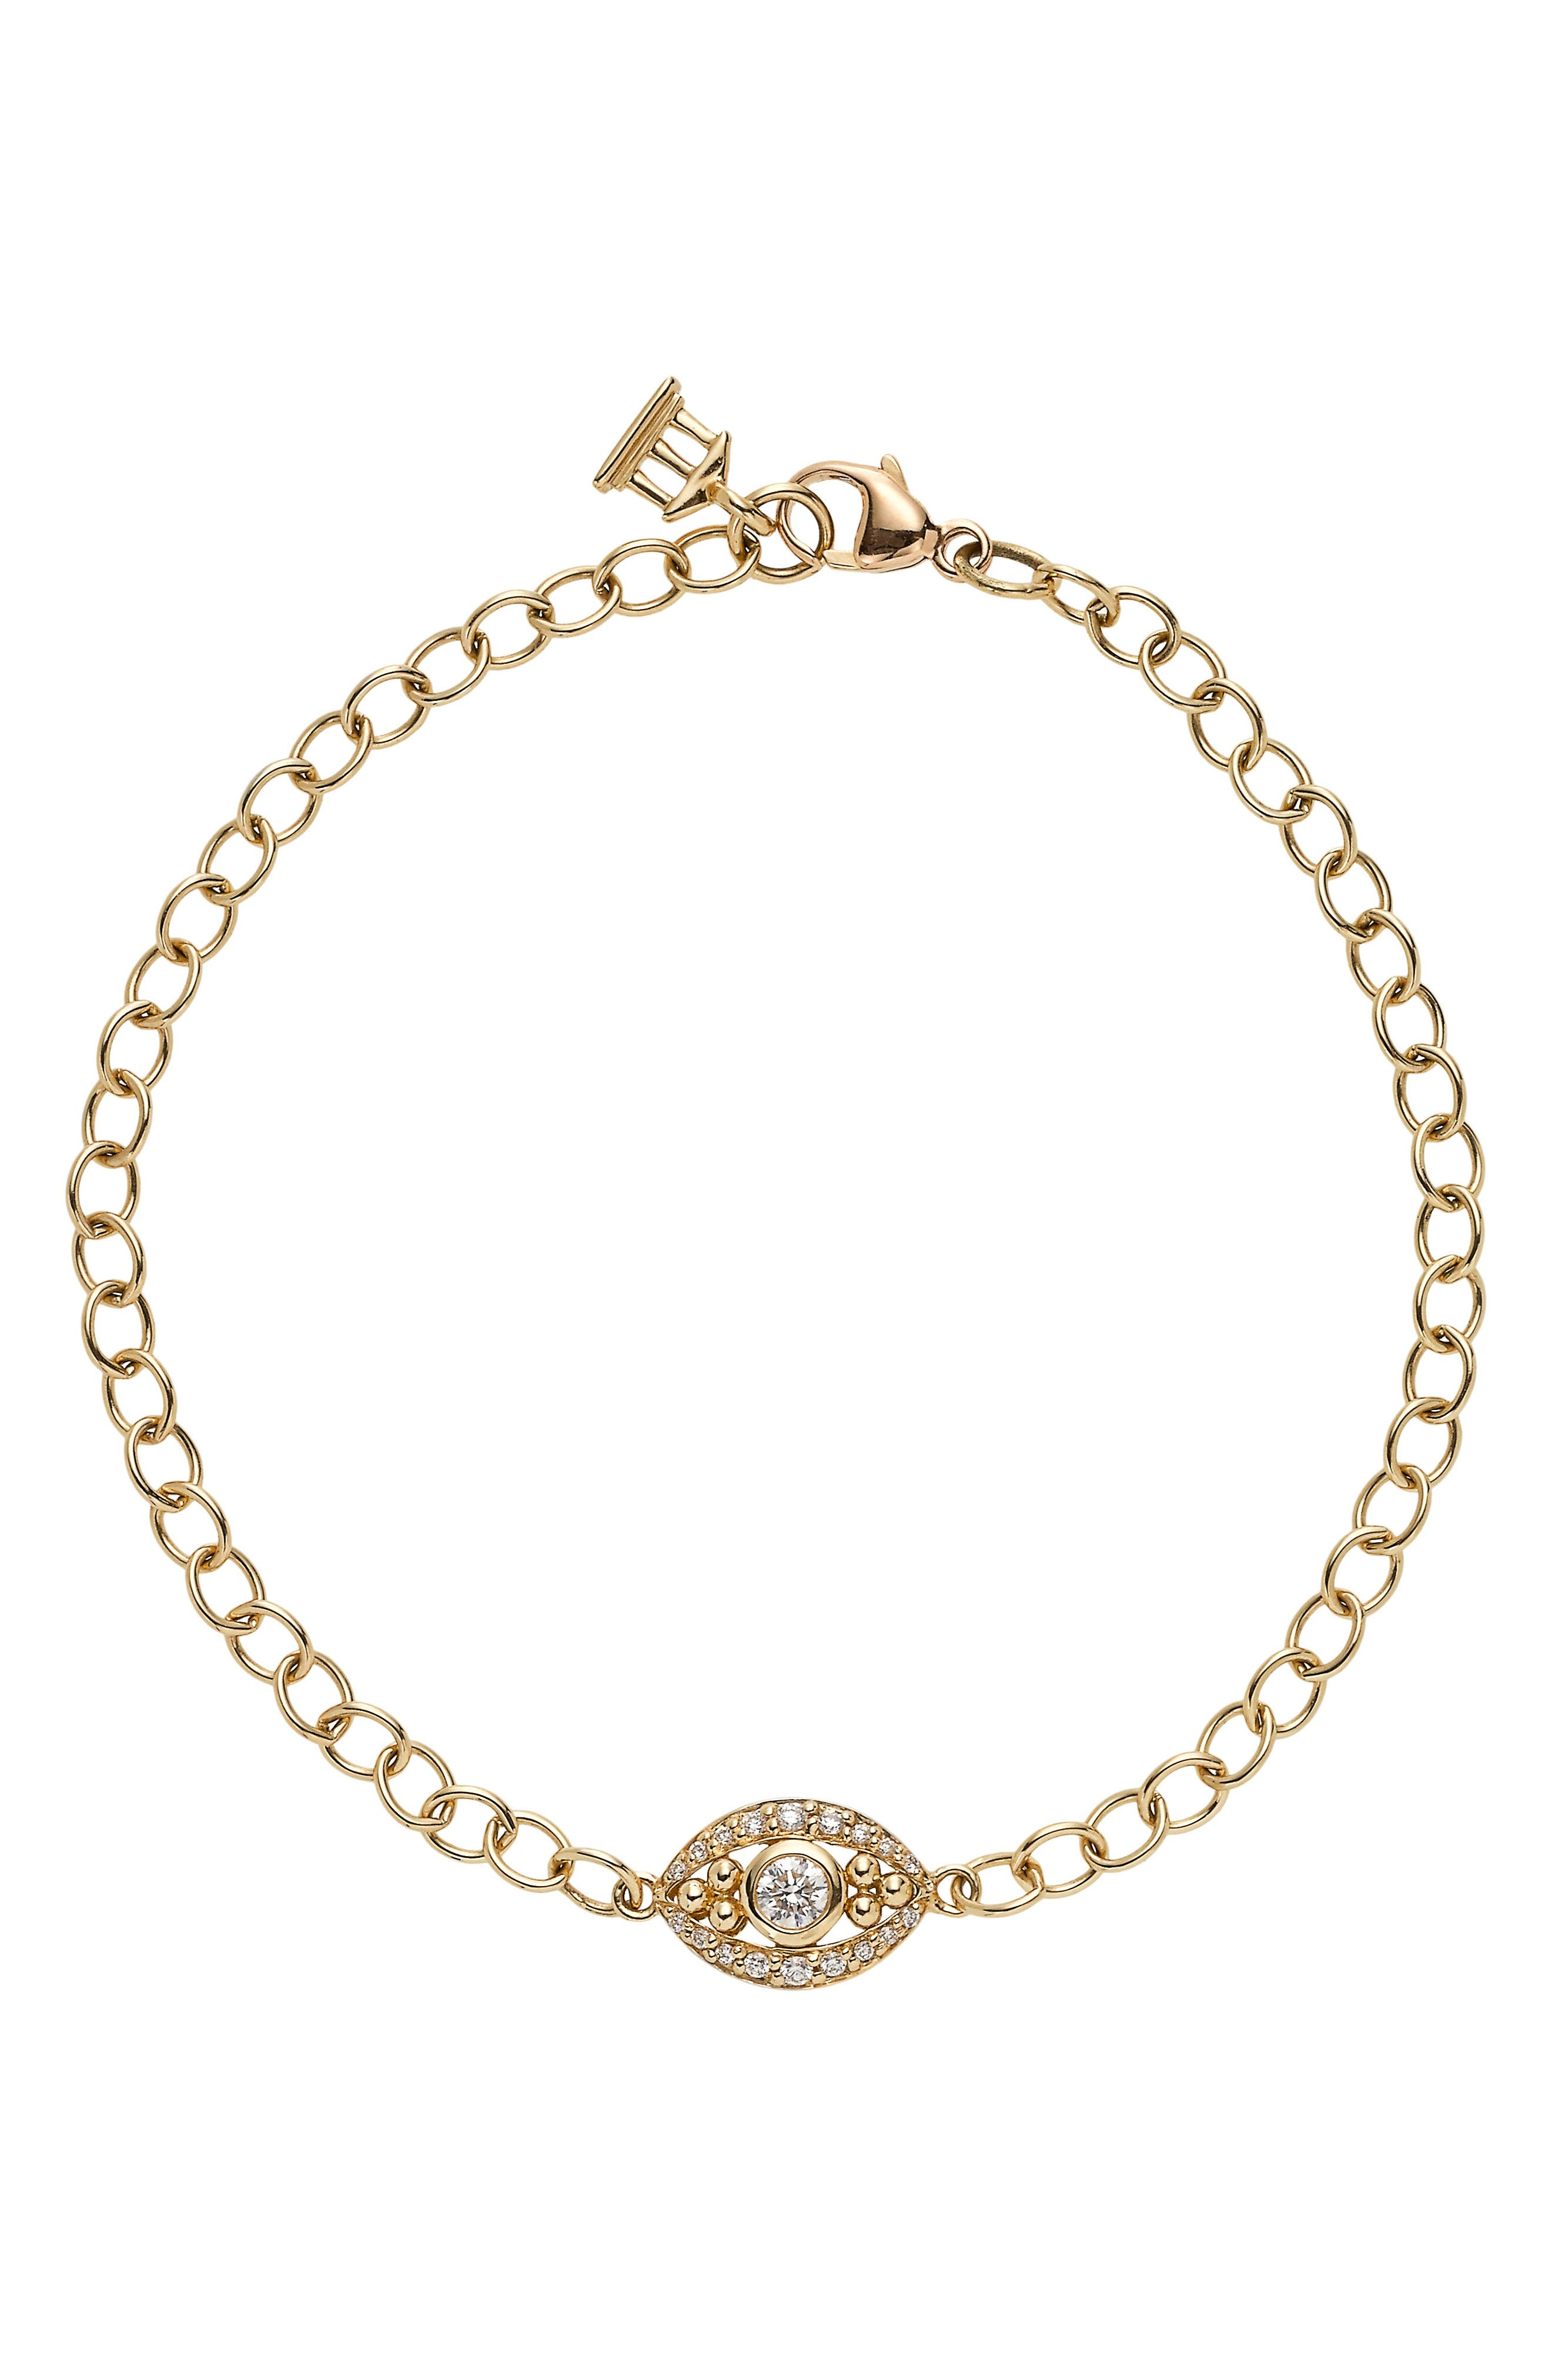 Temple St. Clair Diamond Evil Eye Line Bracelet,                             Main thumbnail 1, color,                             YELLOW GOLD